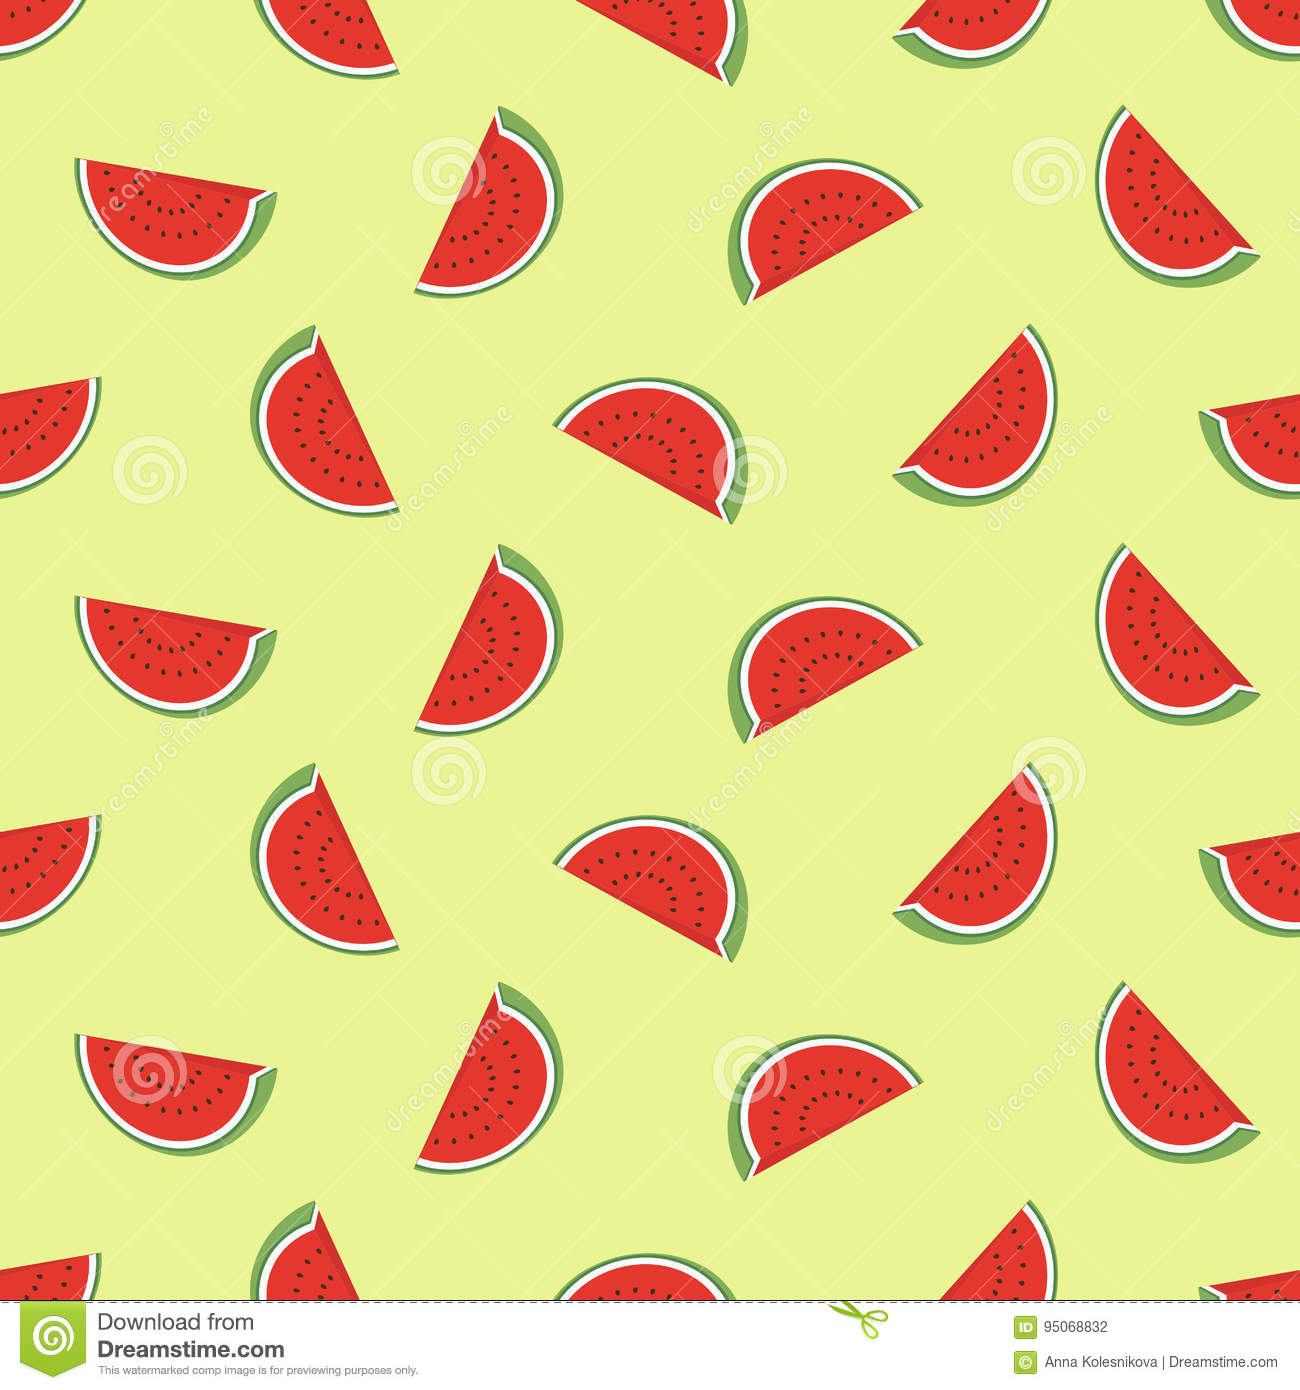 minimalist watermelon high quality seamless pattern cute seamless pattern watermelons vector background good wallpaper 95068832